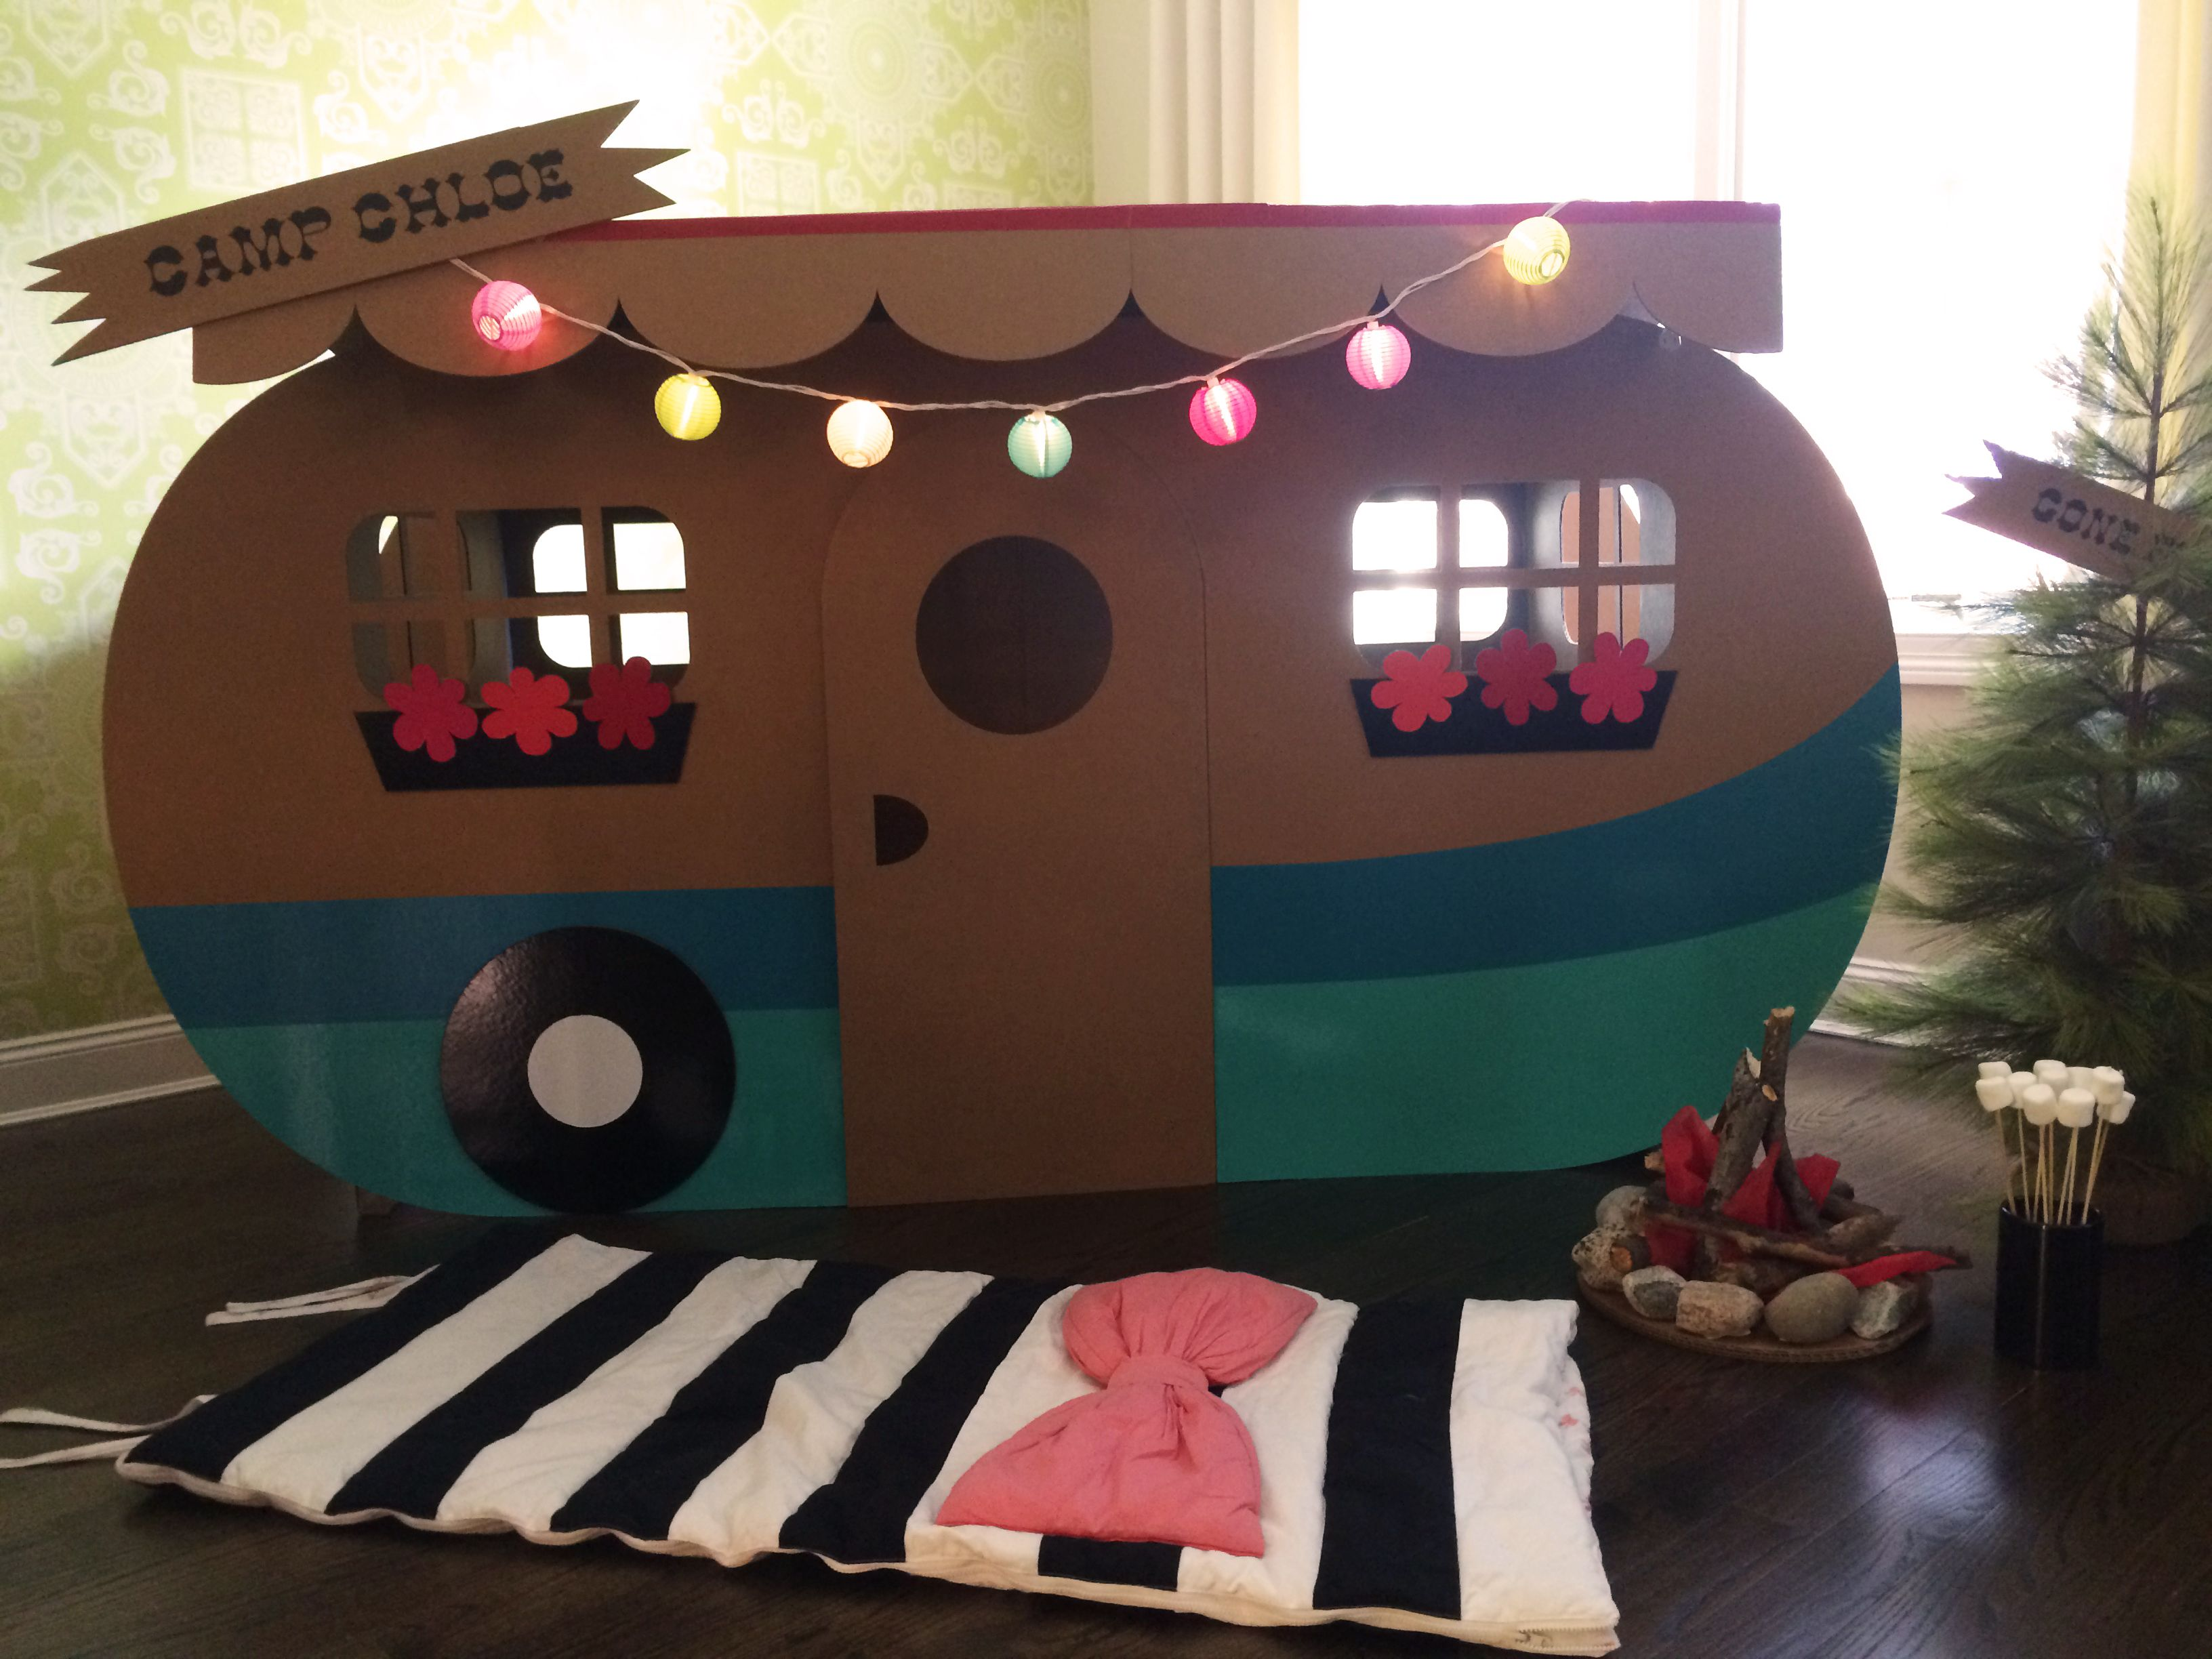 INDOOR CAMPING BIRTHDAY PARTY - Project Nursery